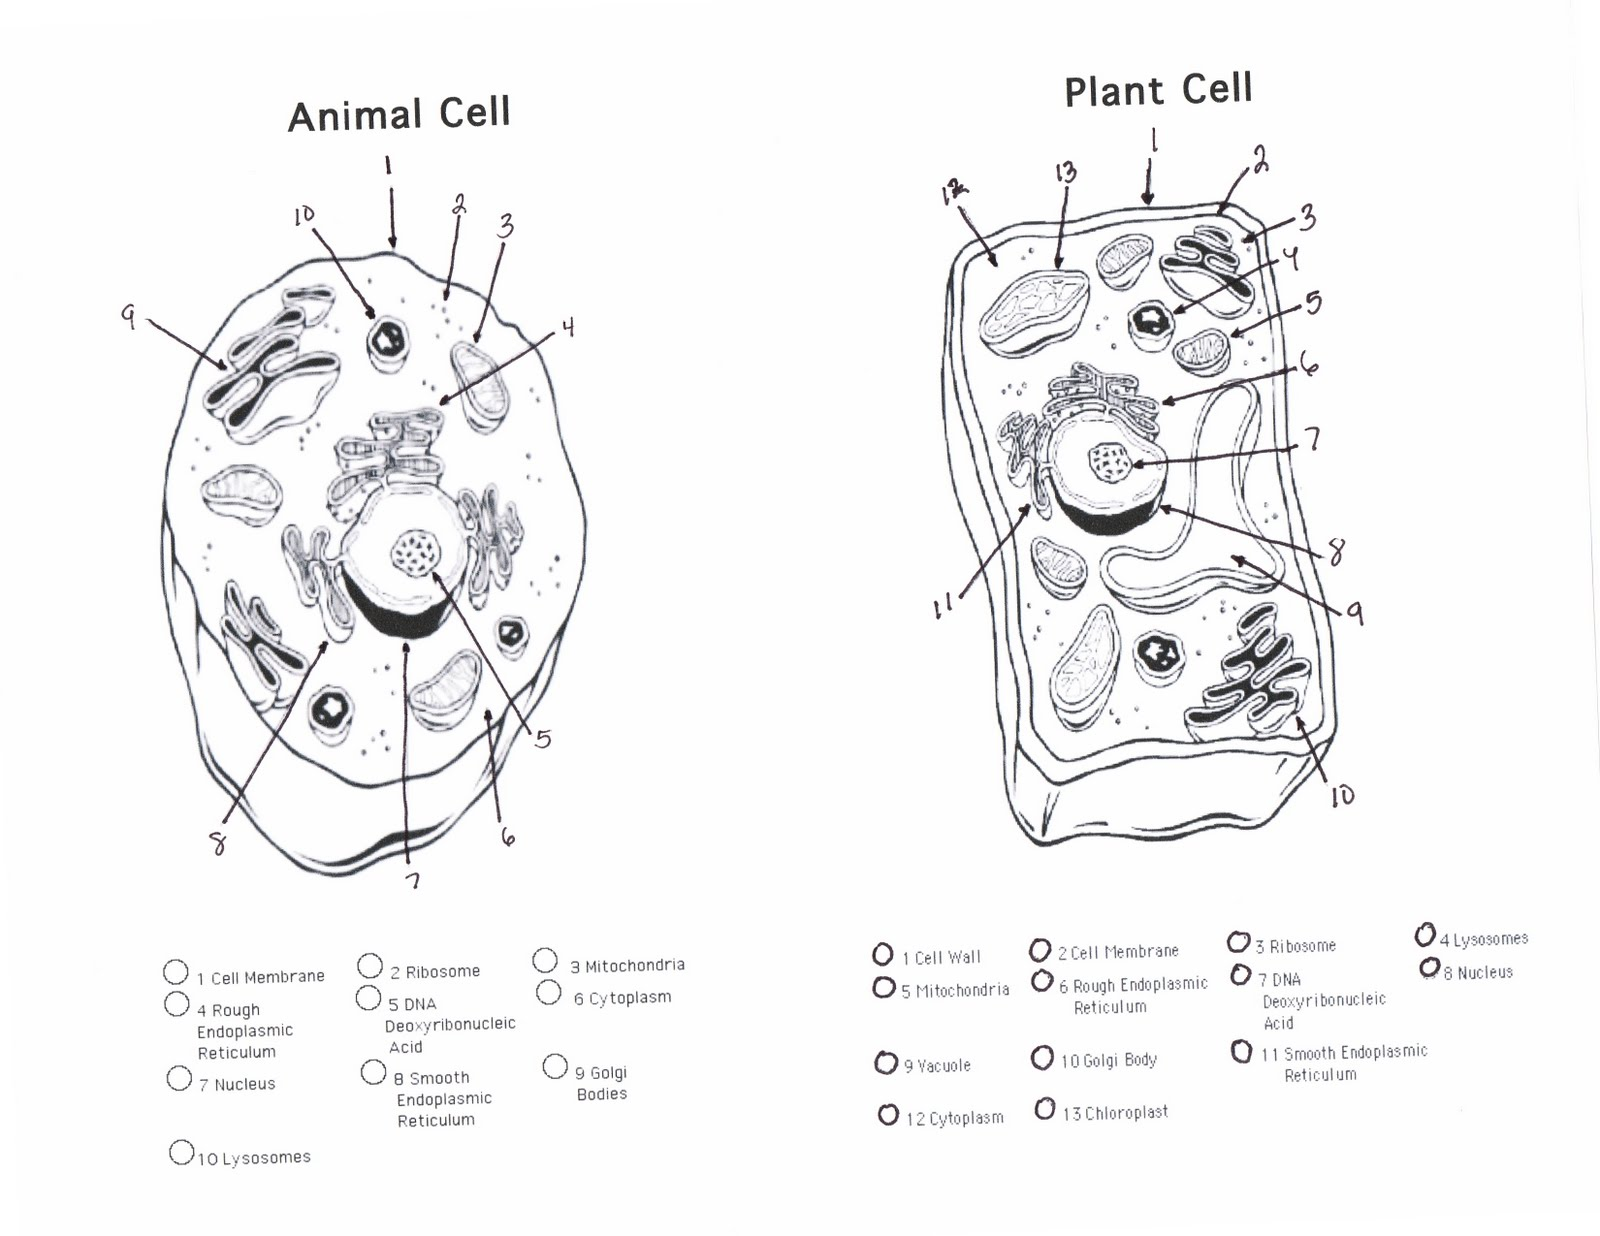 Emejing Animal Cell Coloring Worksheet Key Pictures Printable